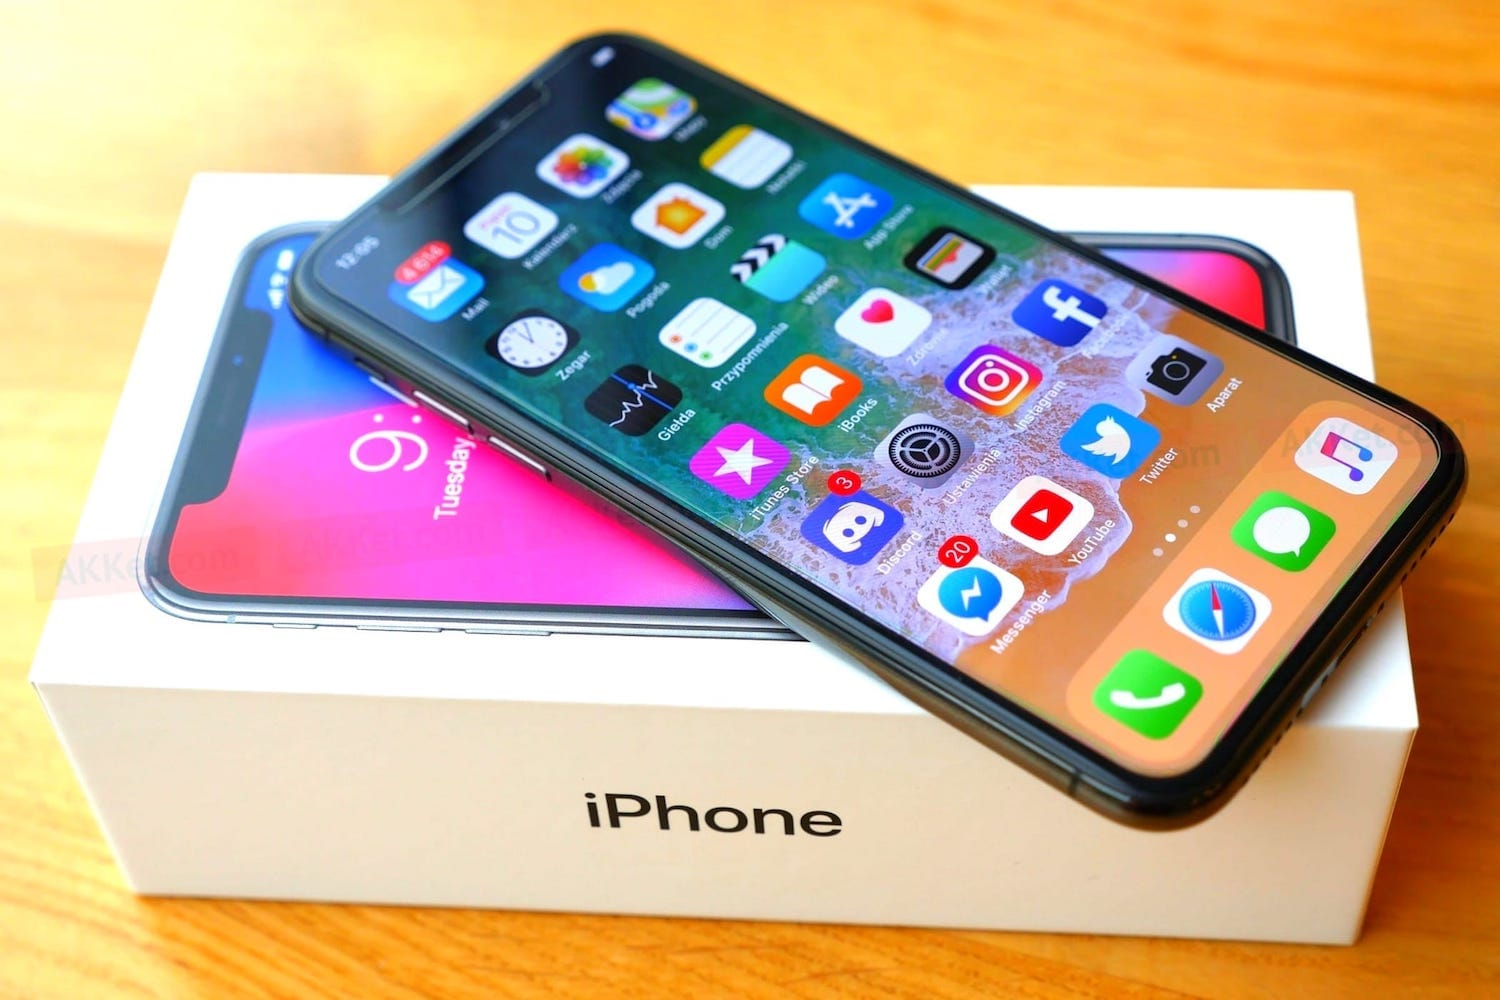 The new iPhone because of the Apple A12 processor will be